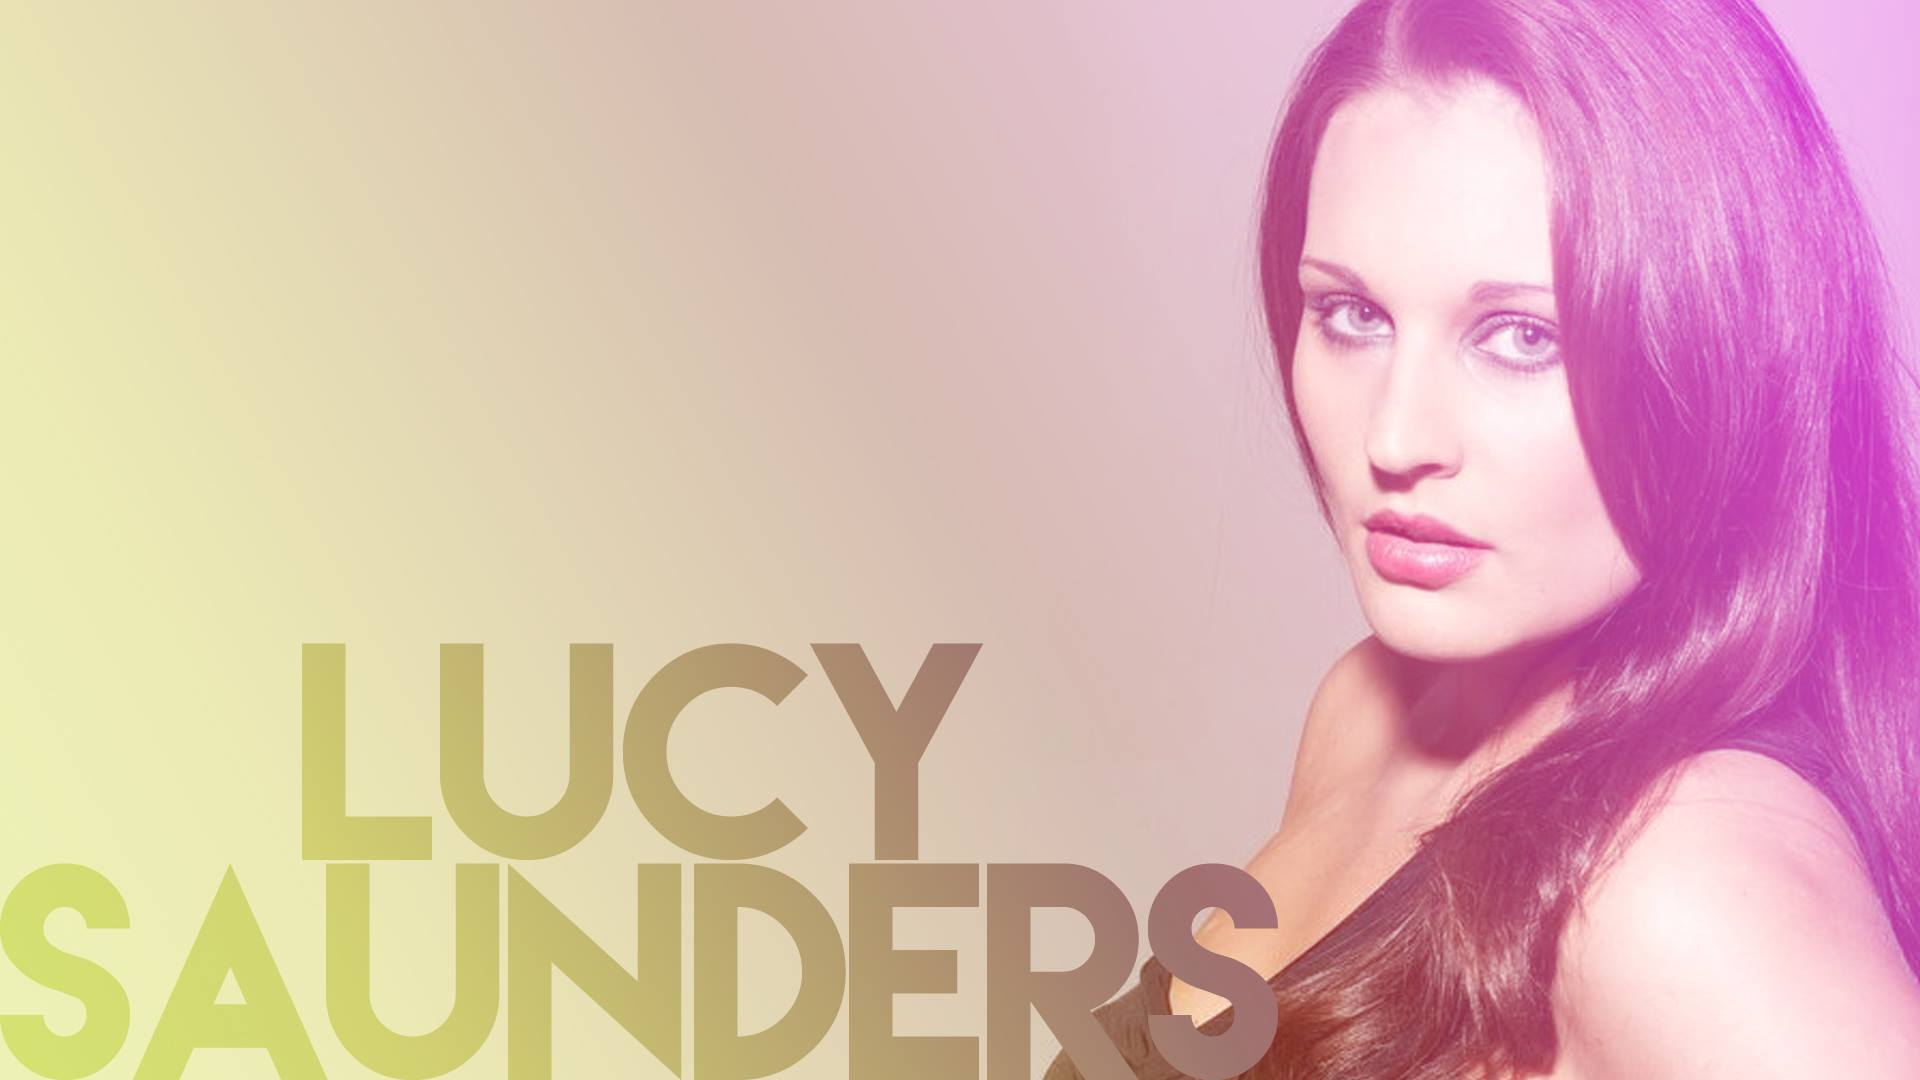 lucy s